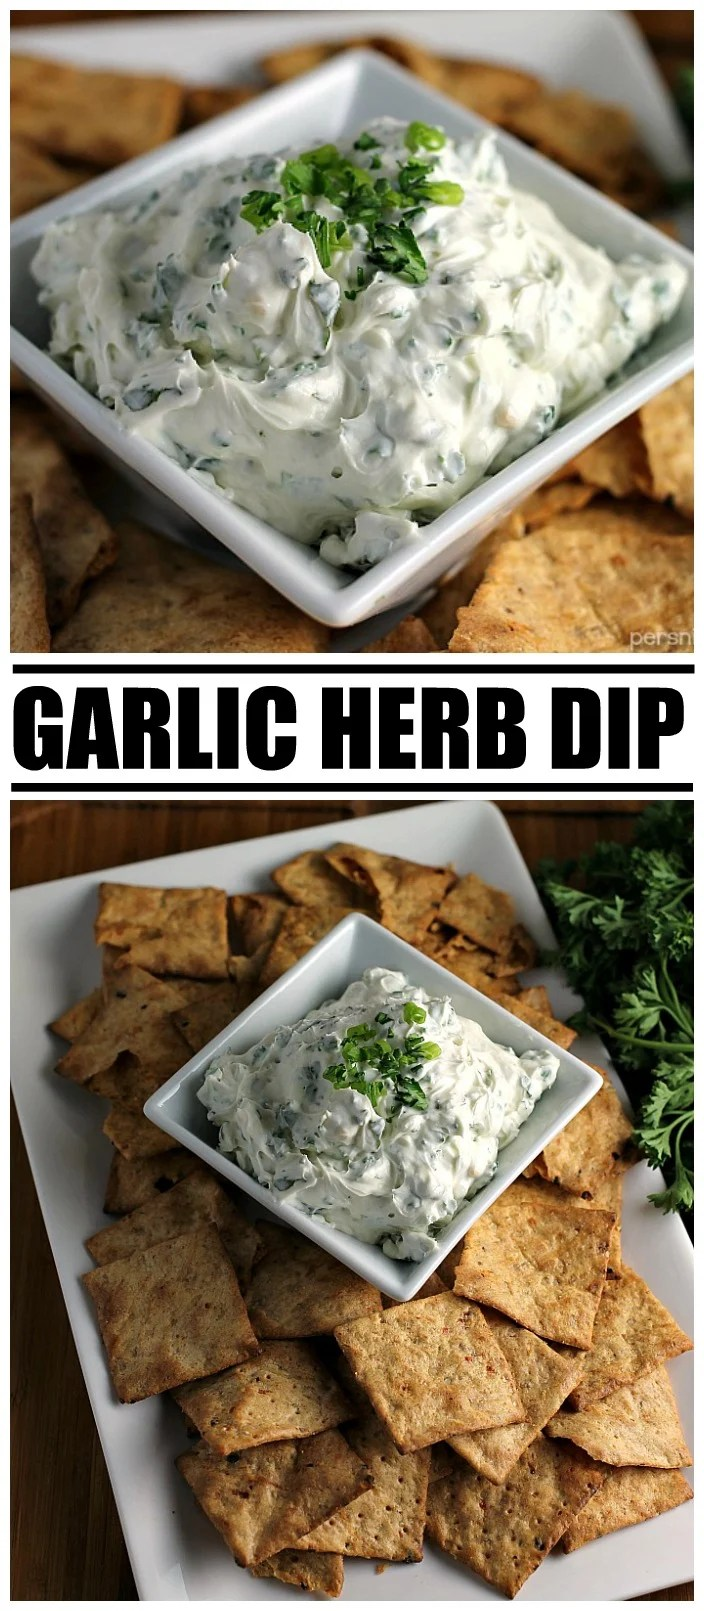 Garlic Herb Dip starts with a cream cheese base then is filled with fresh herbs. Pair this super easy dip recipe with crackers, chips, or veggies to make the perfect quick snack for your next party or game day.   www.persnicketyplates.com #dip #appetizer #easyrecipe #partyfood #garlic